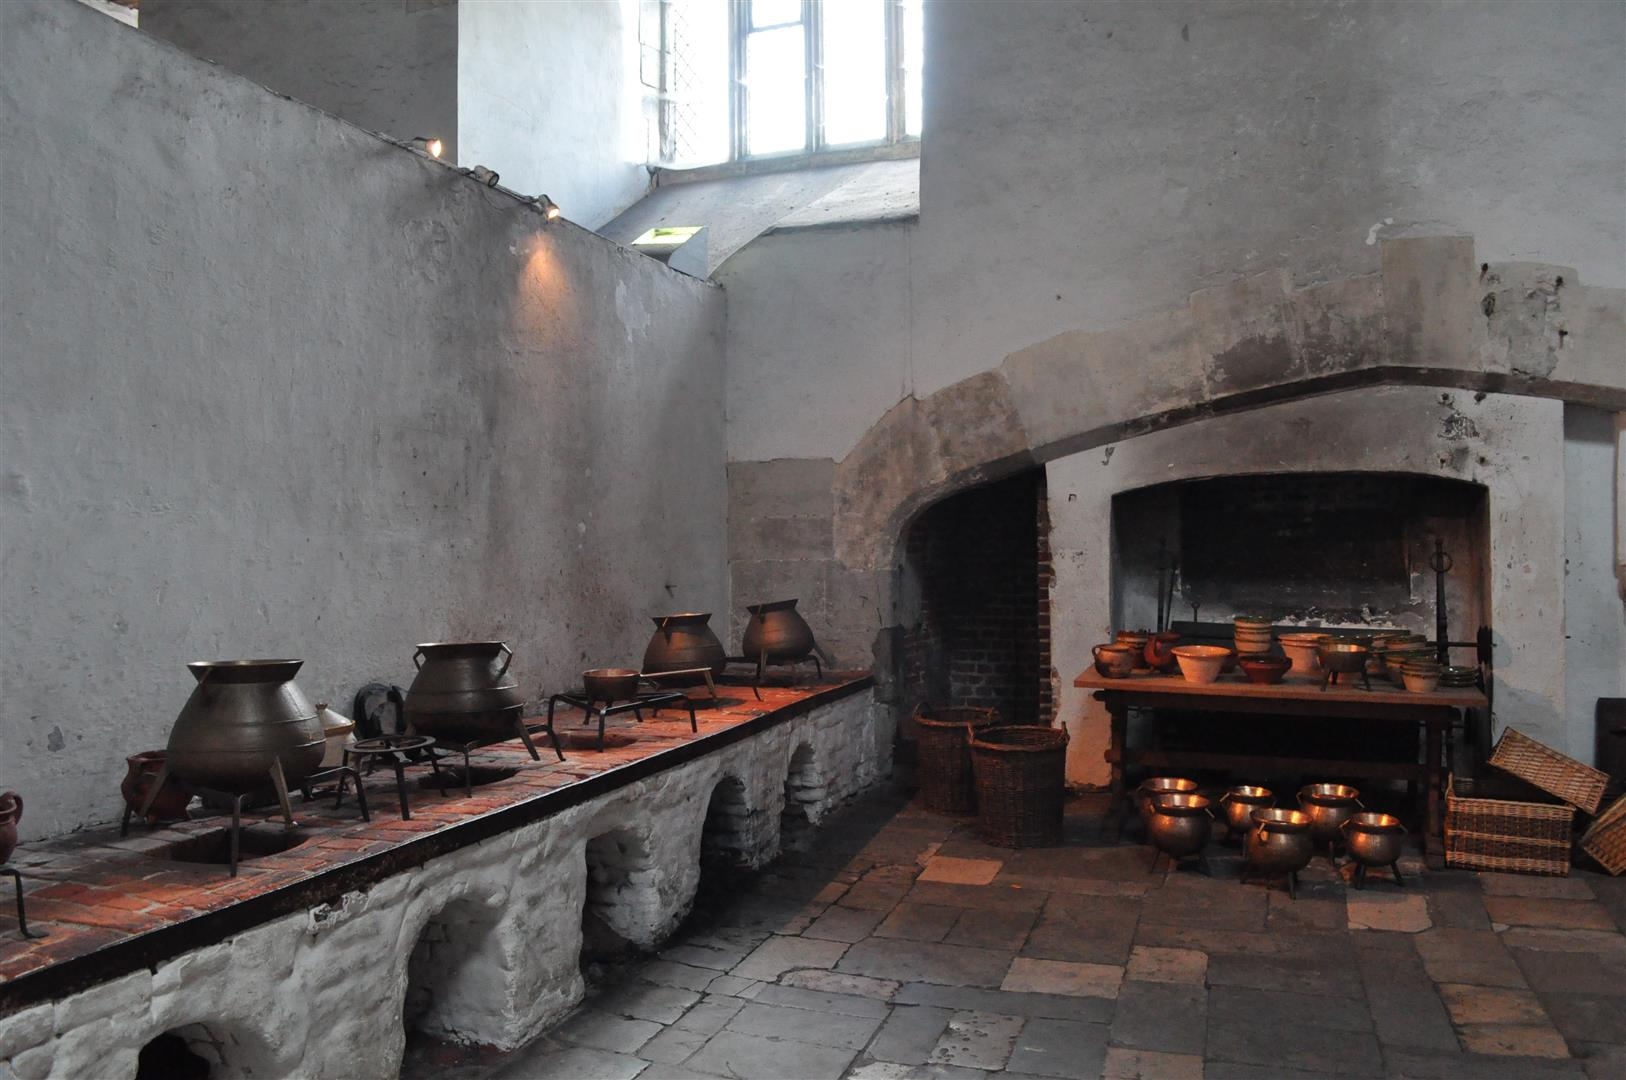 Kitchens 1, Hampton Court